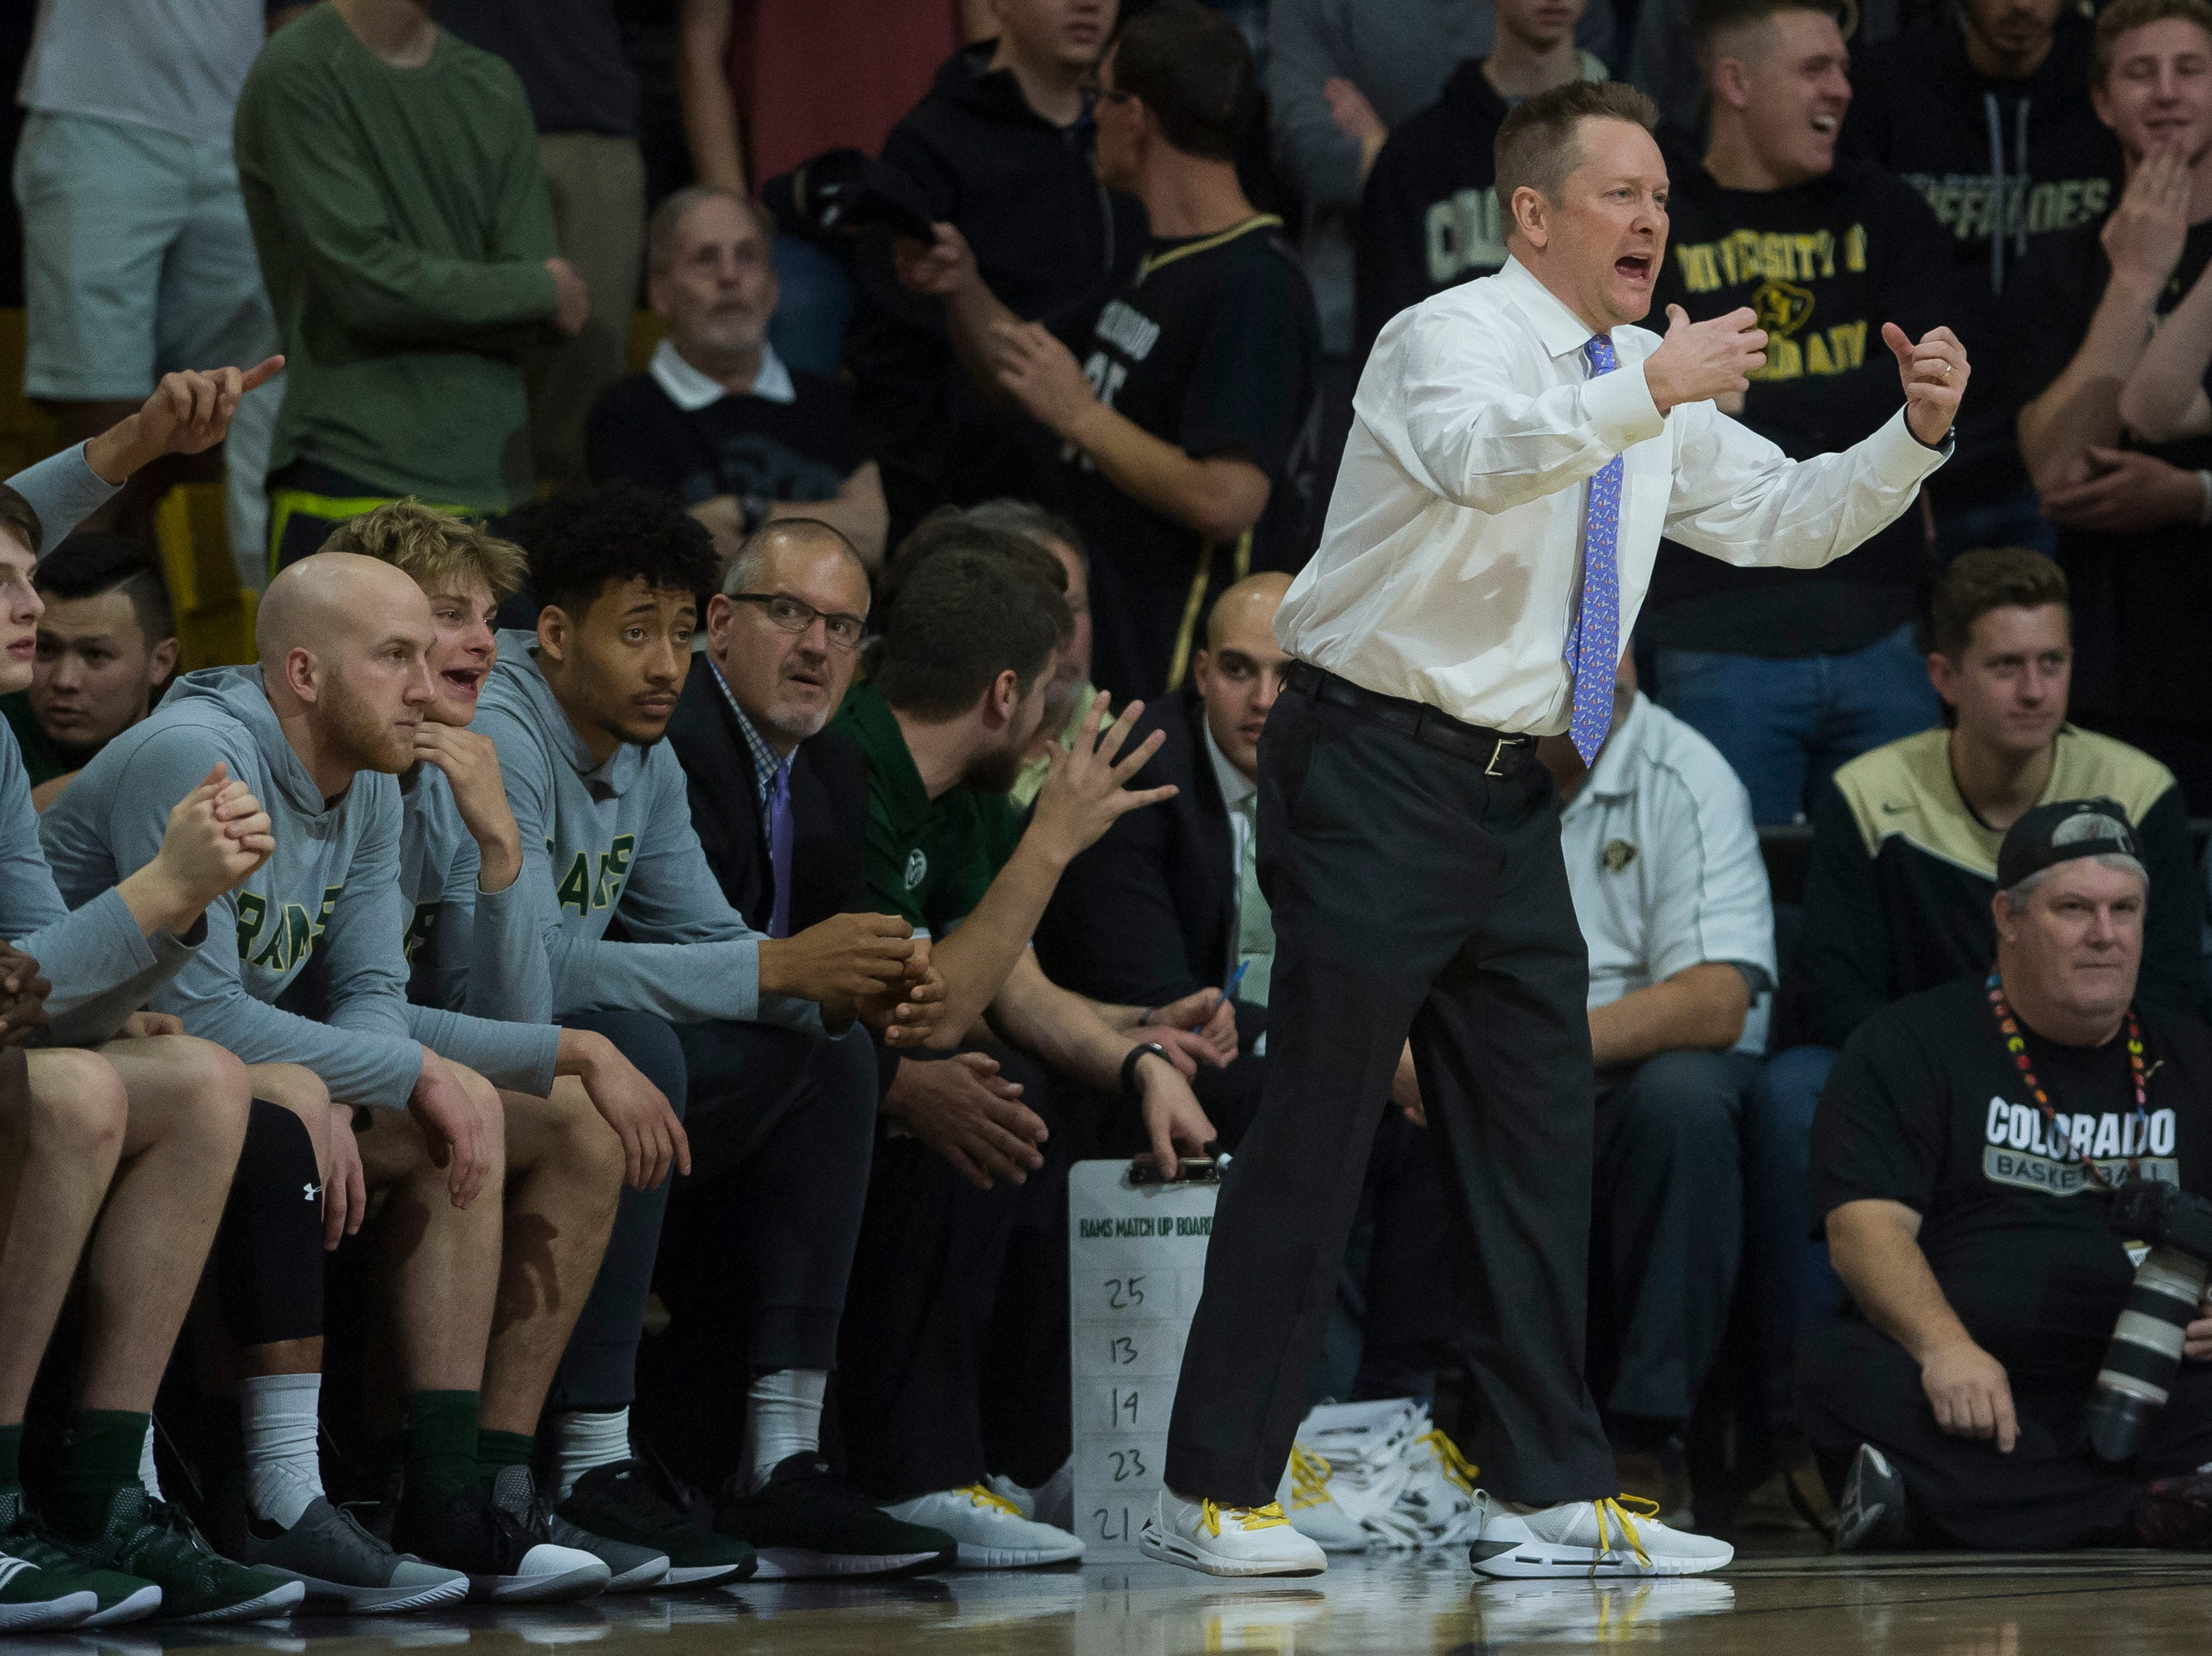 Colorado State University head coach Niko Medved reacts to a play during a game against the University of Colorado on Saturday, Dec. 1, 2018, at the CU Event Center in Boulder, Colo.